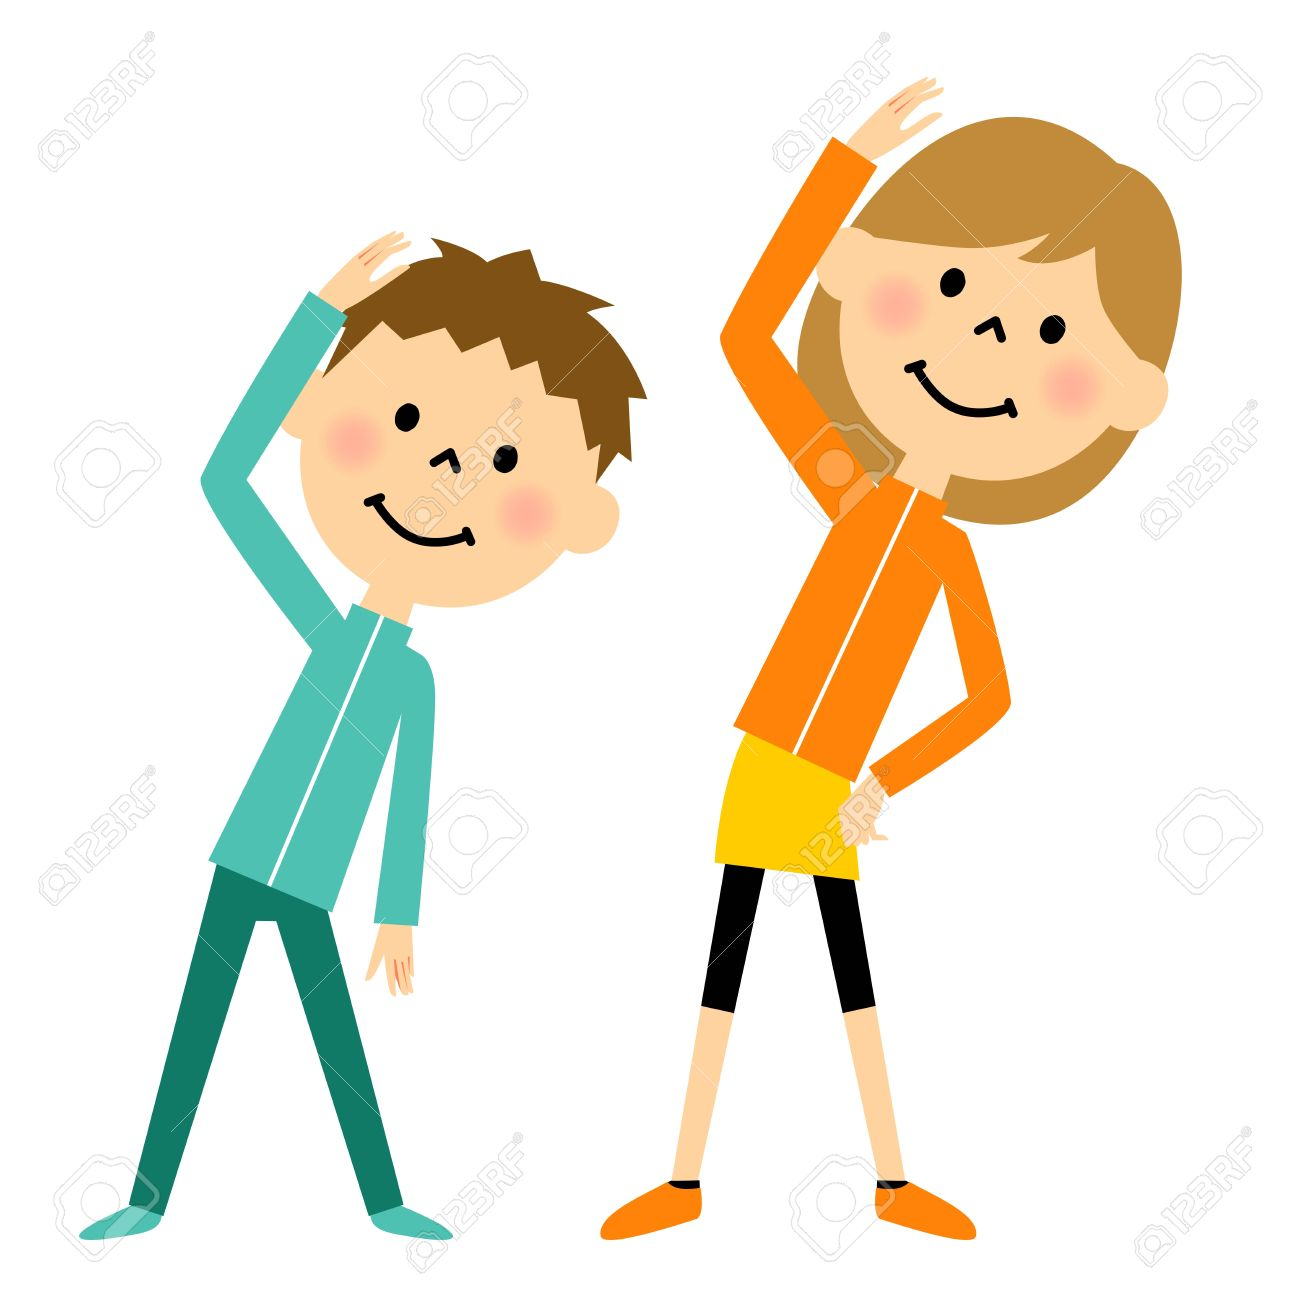 Warm-up Exercises To Children Royalty Free Cliparts, Vectors, And ...